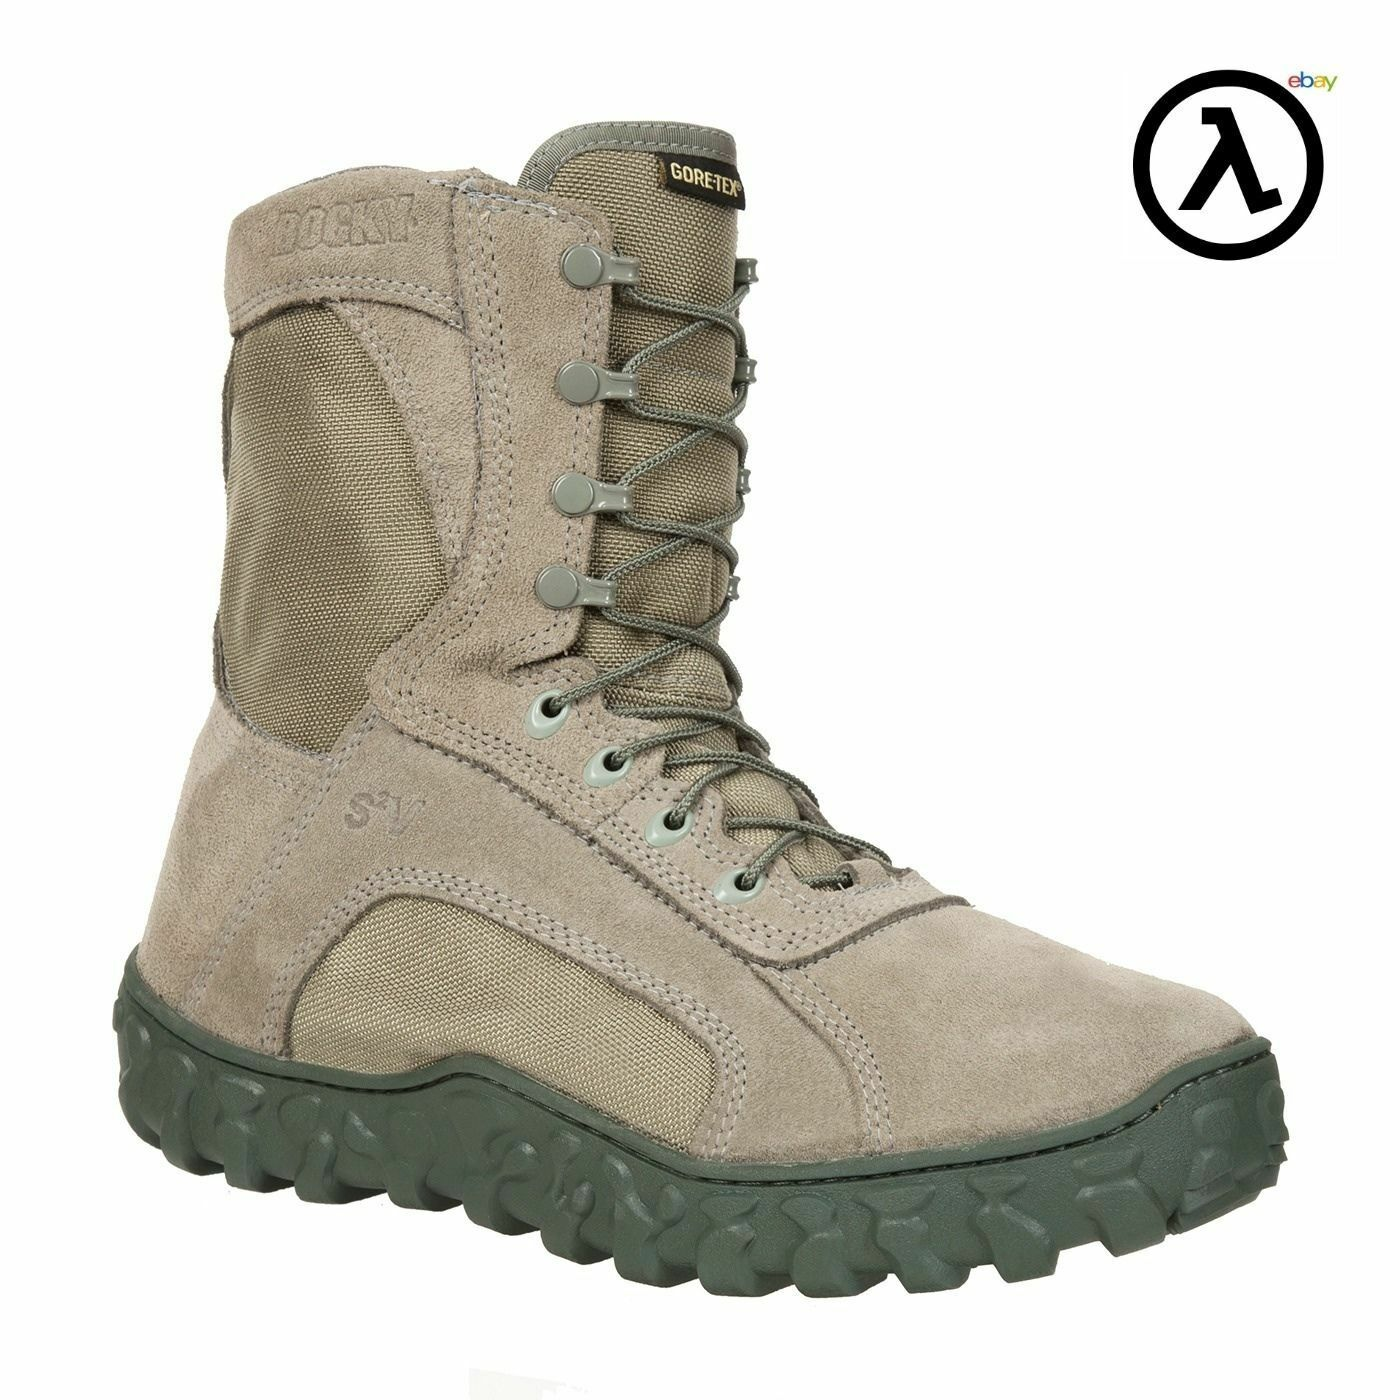 ROCKY S2V GORE-TEX WATERPROOF INSULATED TACTICAL BOOTS 103-1 * ALL SIZES - SALE